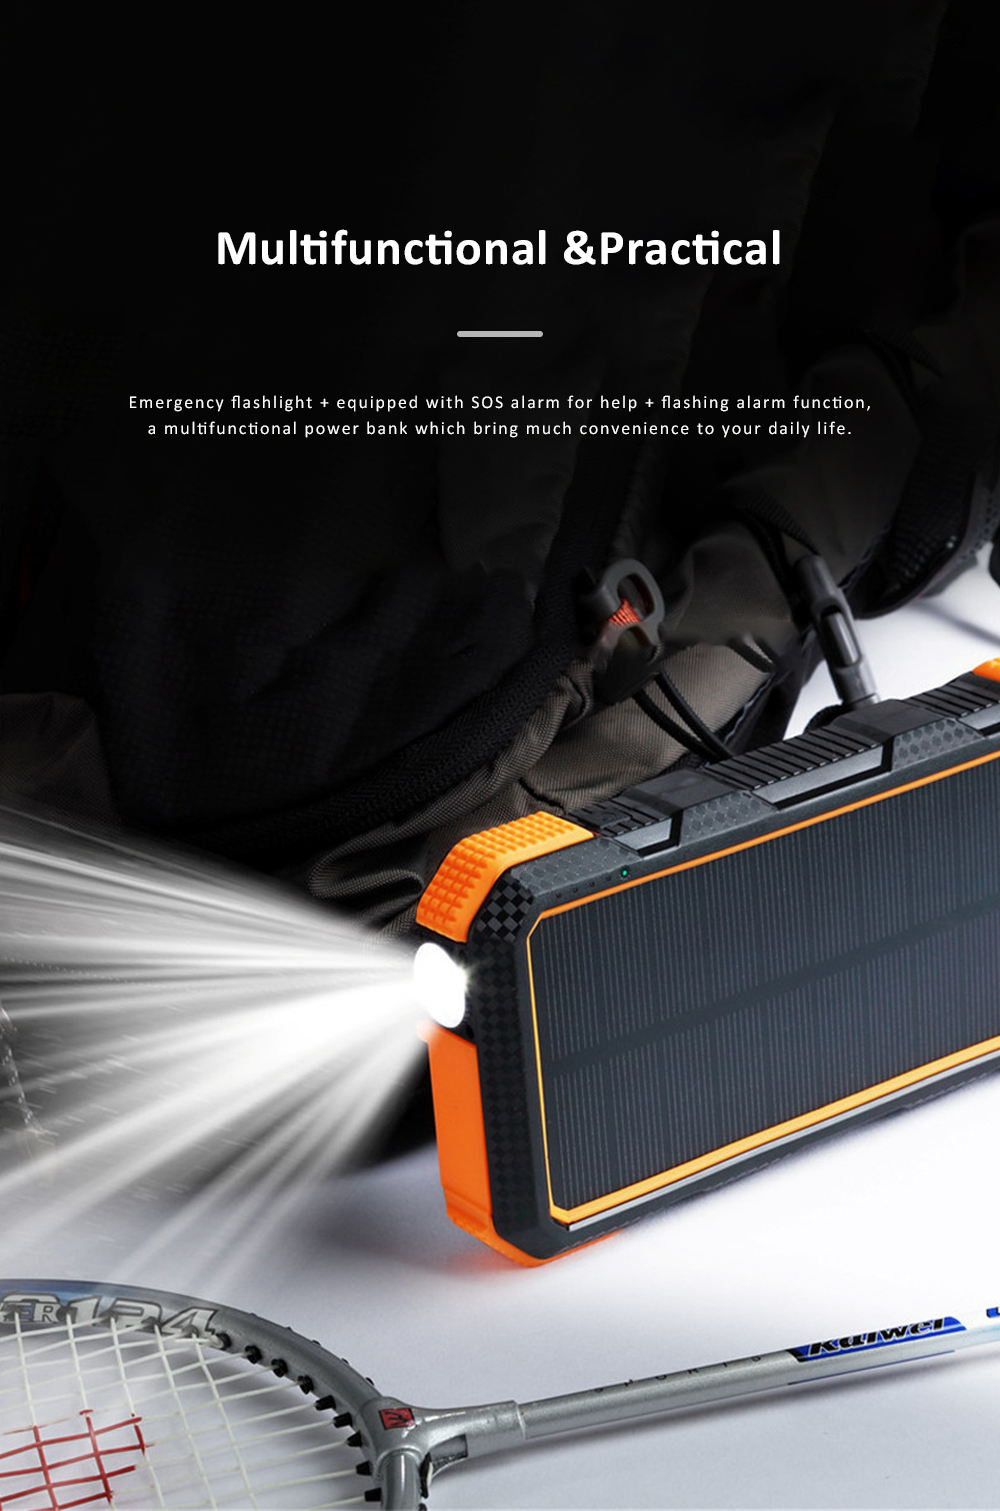 24000mAh Portable Solar Charger Two-way Type-C Power Bank with Flashlight and Metal Hook for Mobile Phone iPad MP3 MP4 3